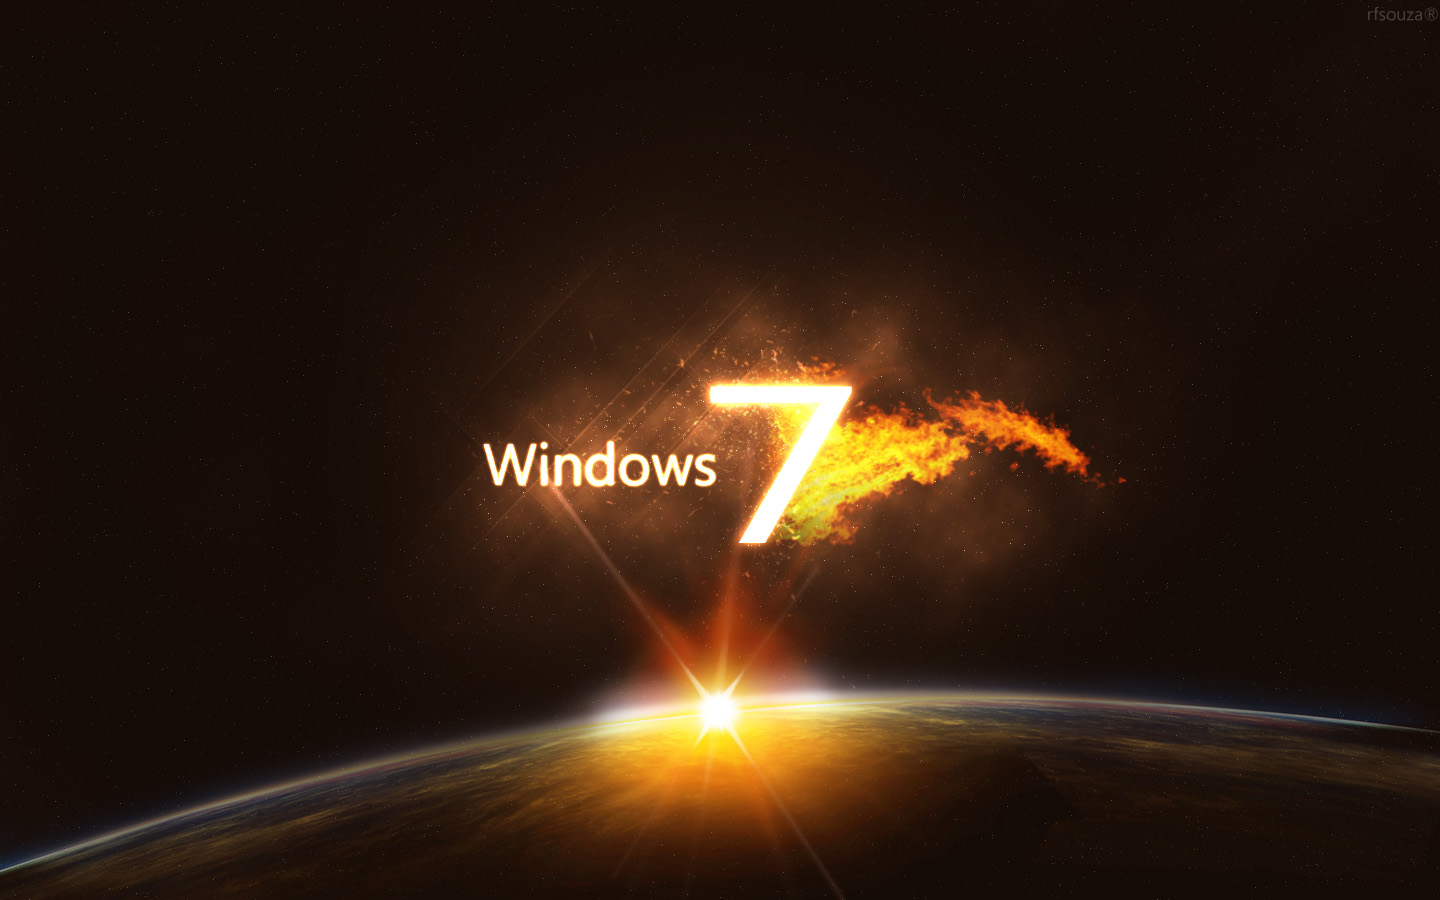 Windows 7 Ultimate Wallpapers HD Wallpapers 1440x900